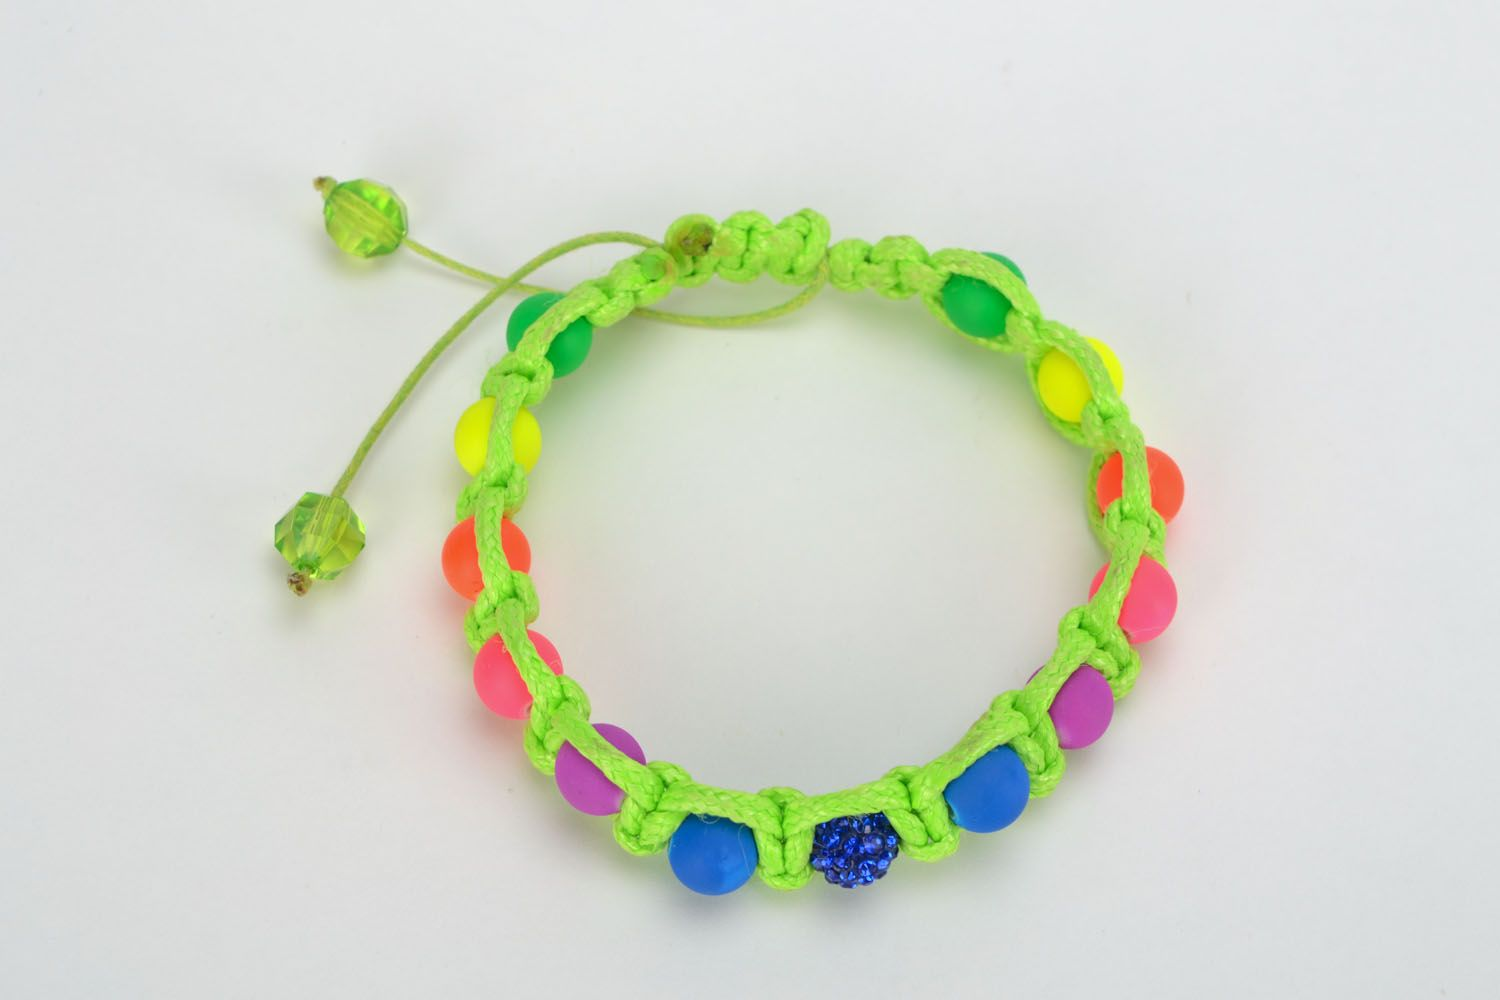 Bracelet woven of colorful beads photo 3